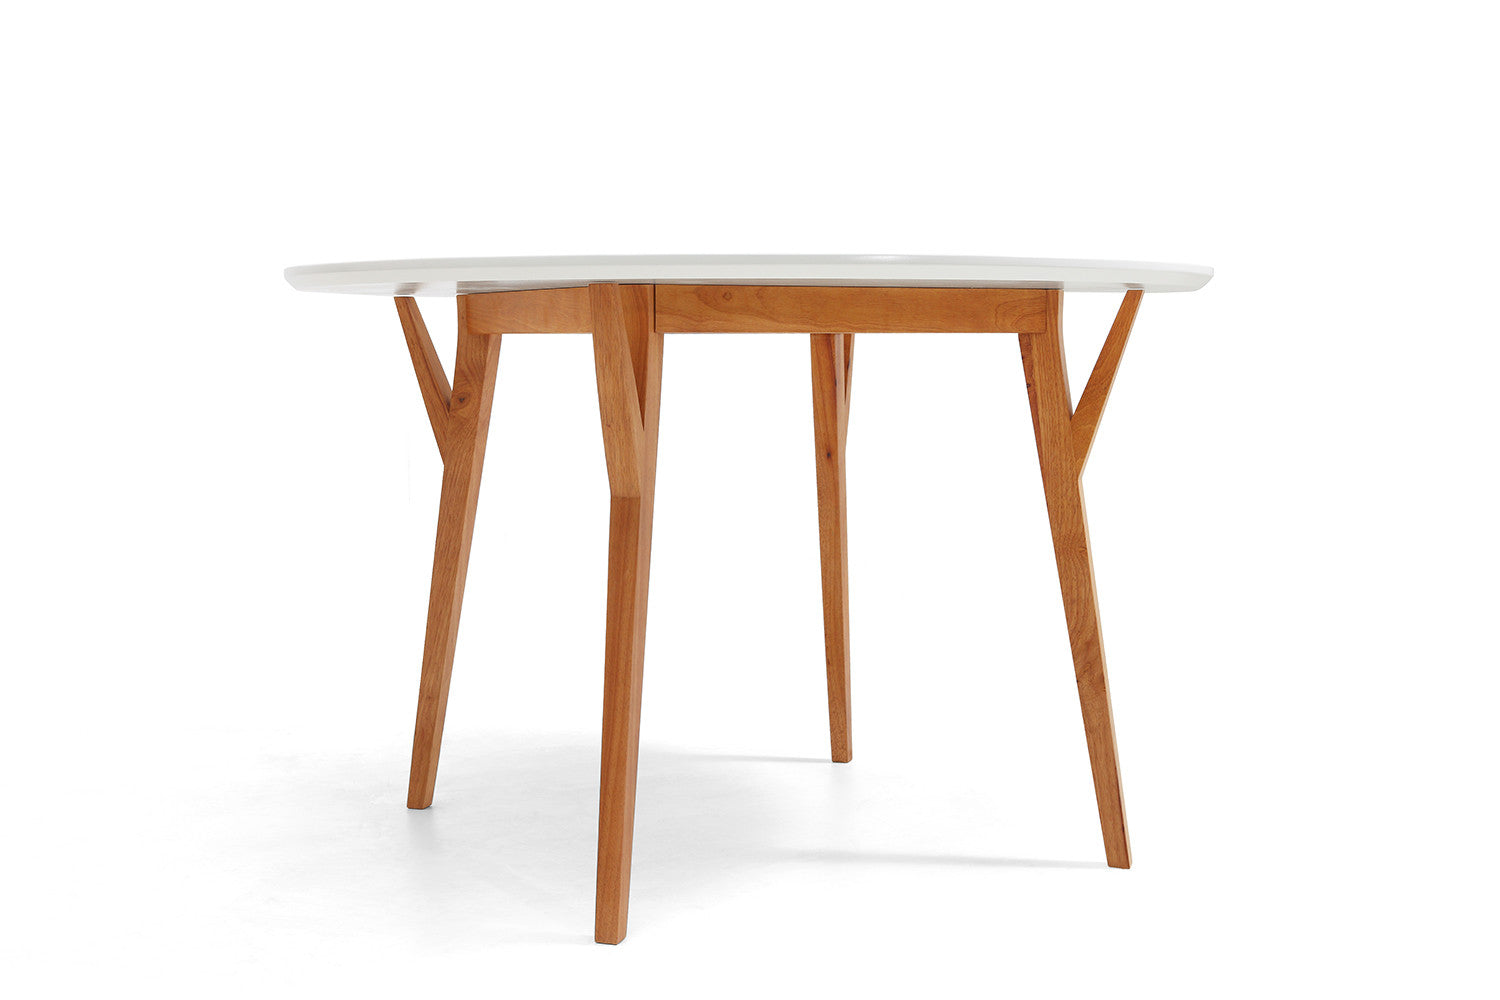 Table de salle manger ronde design scandinave moesa for Salle a manger table ronde ou rectangulaire